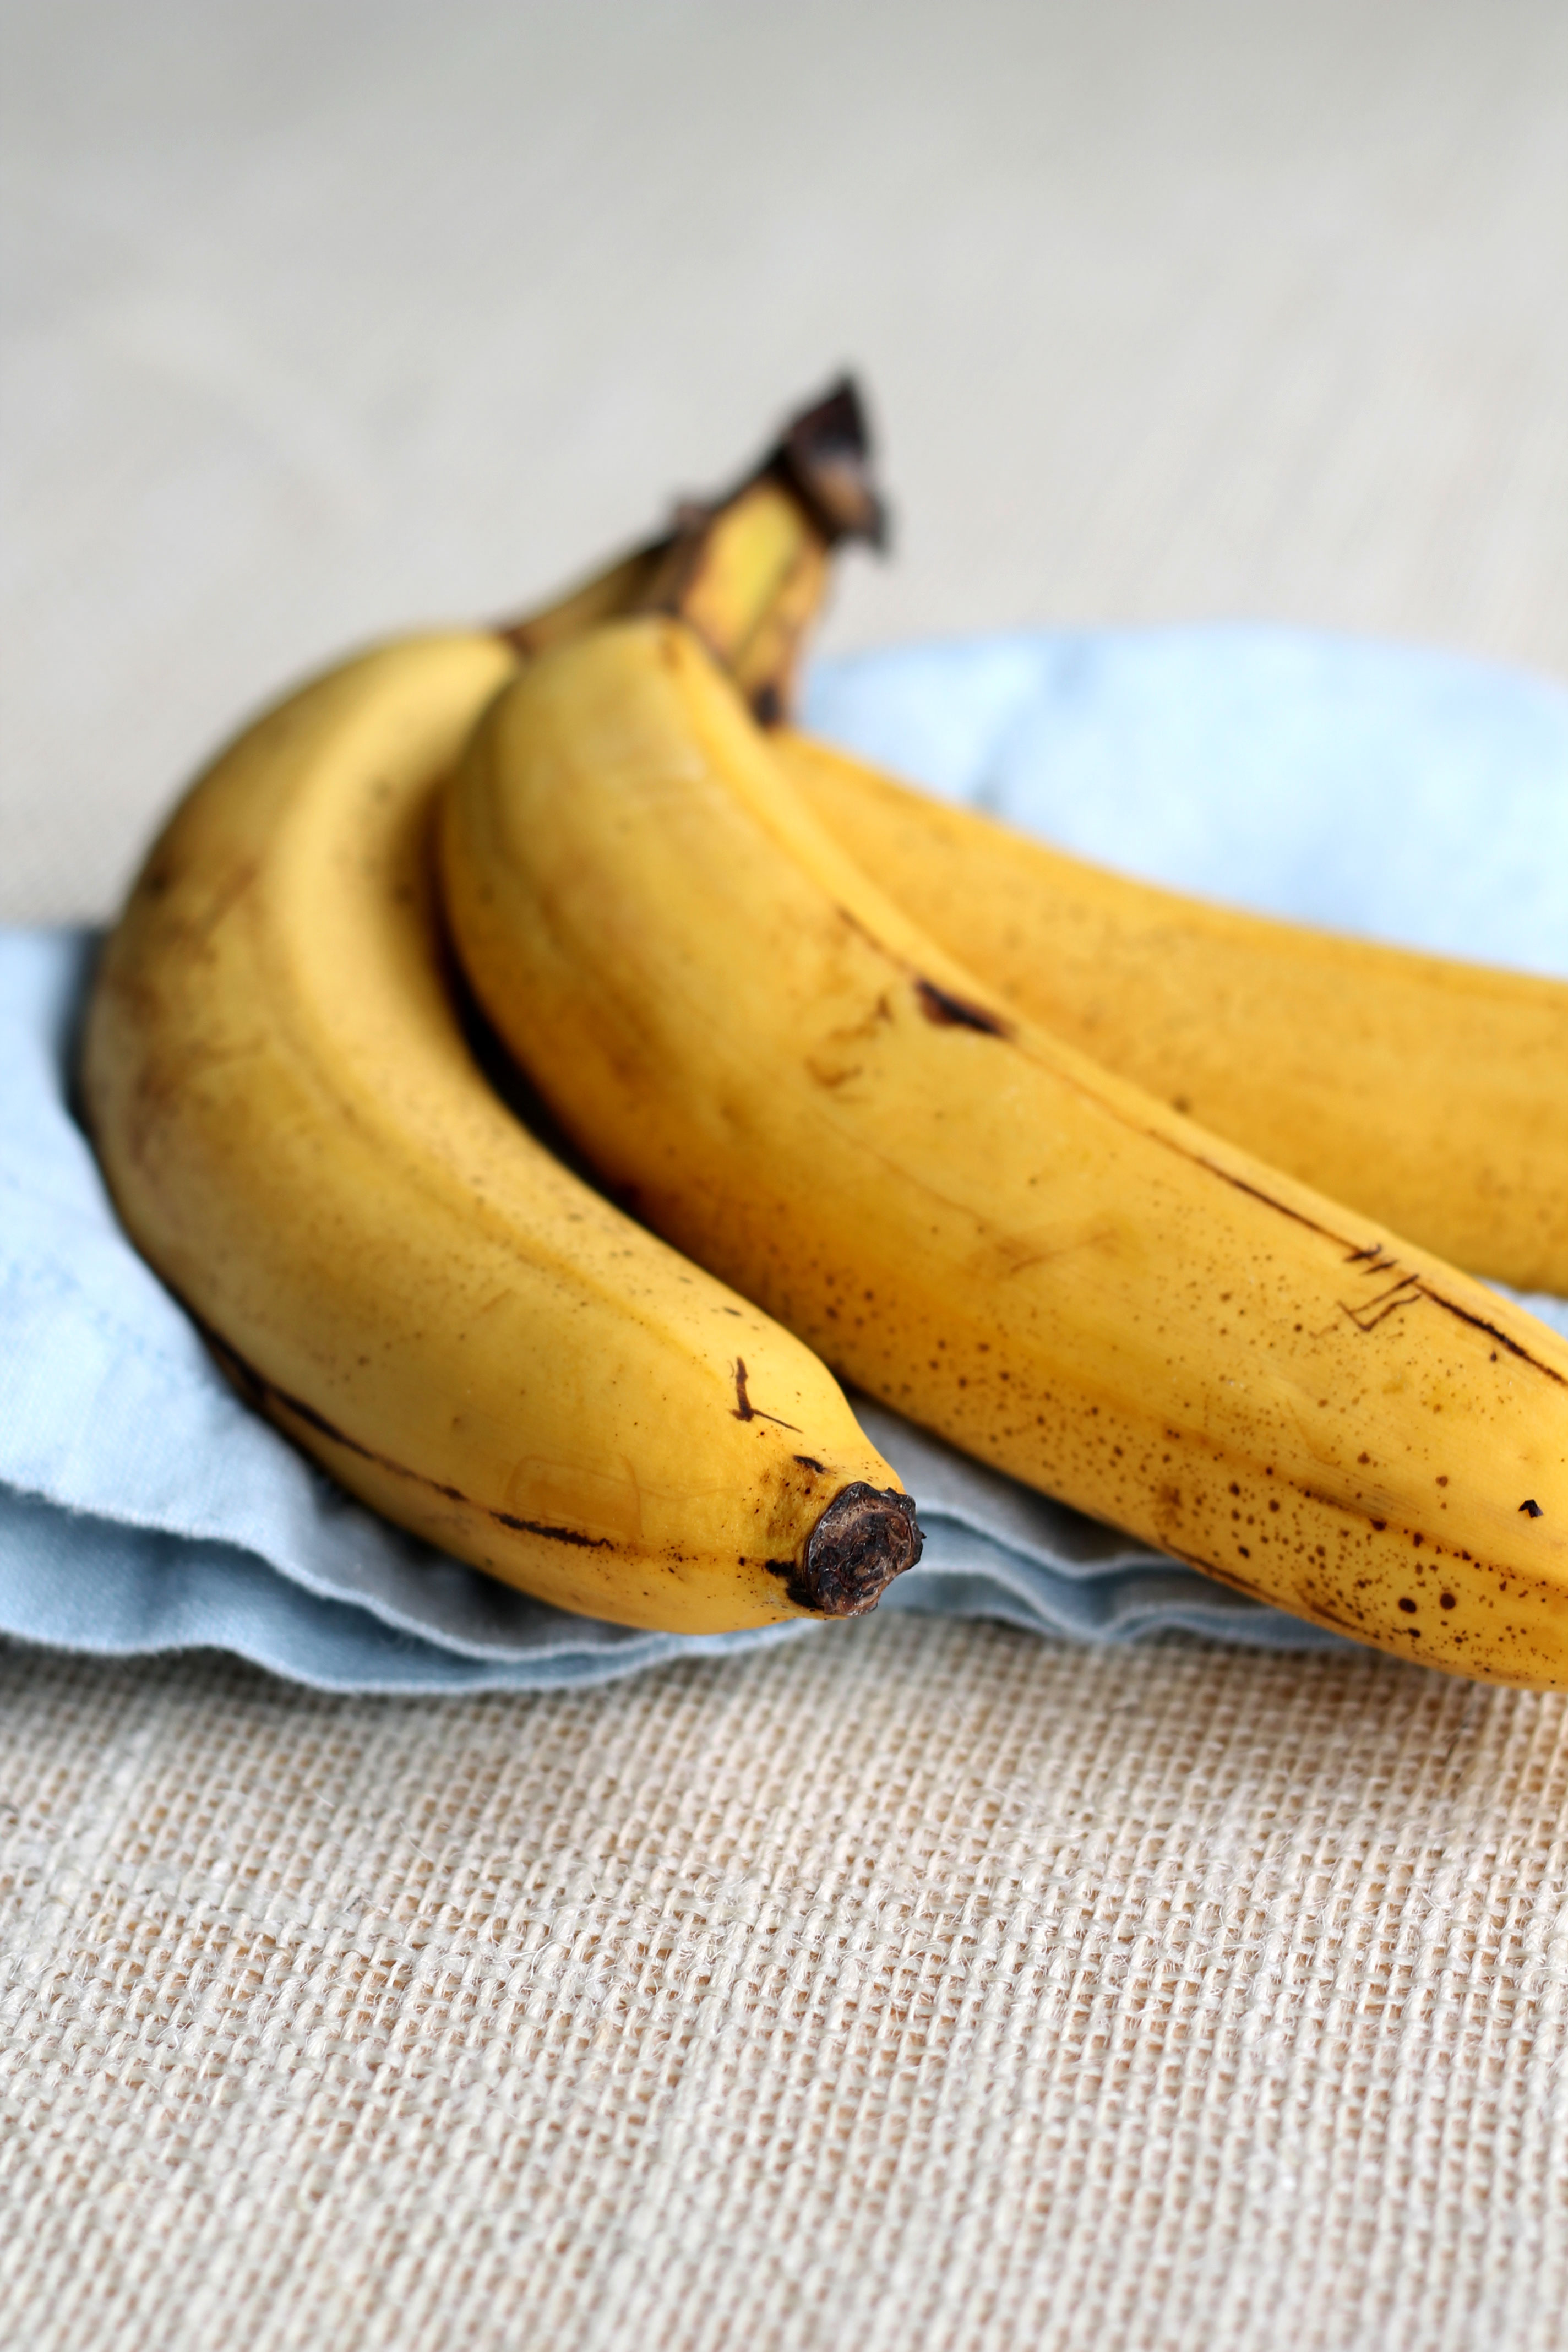 What to do with those ripe bananas